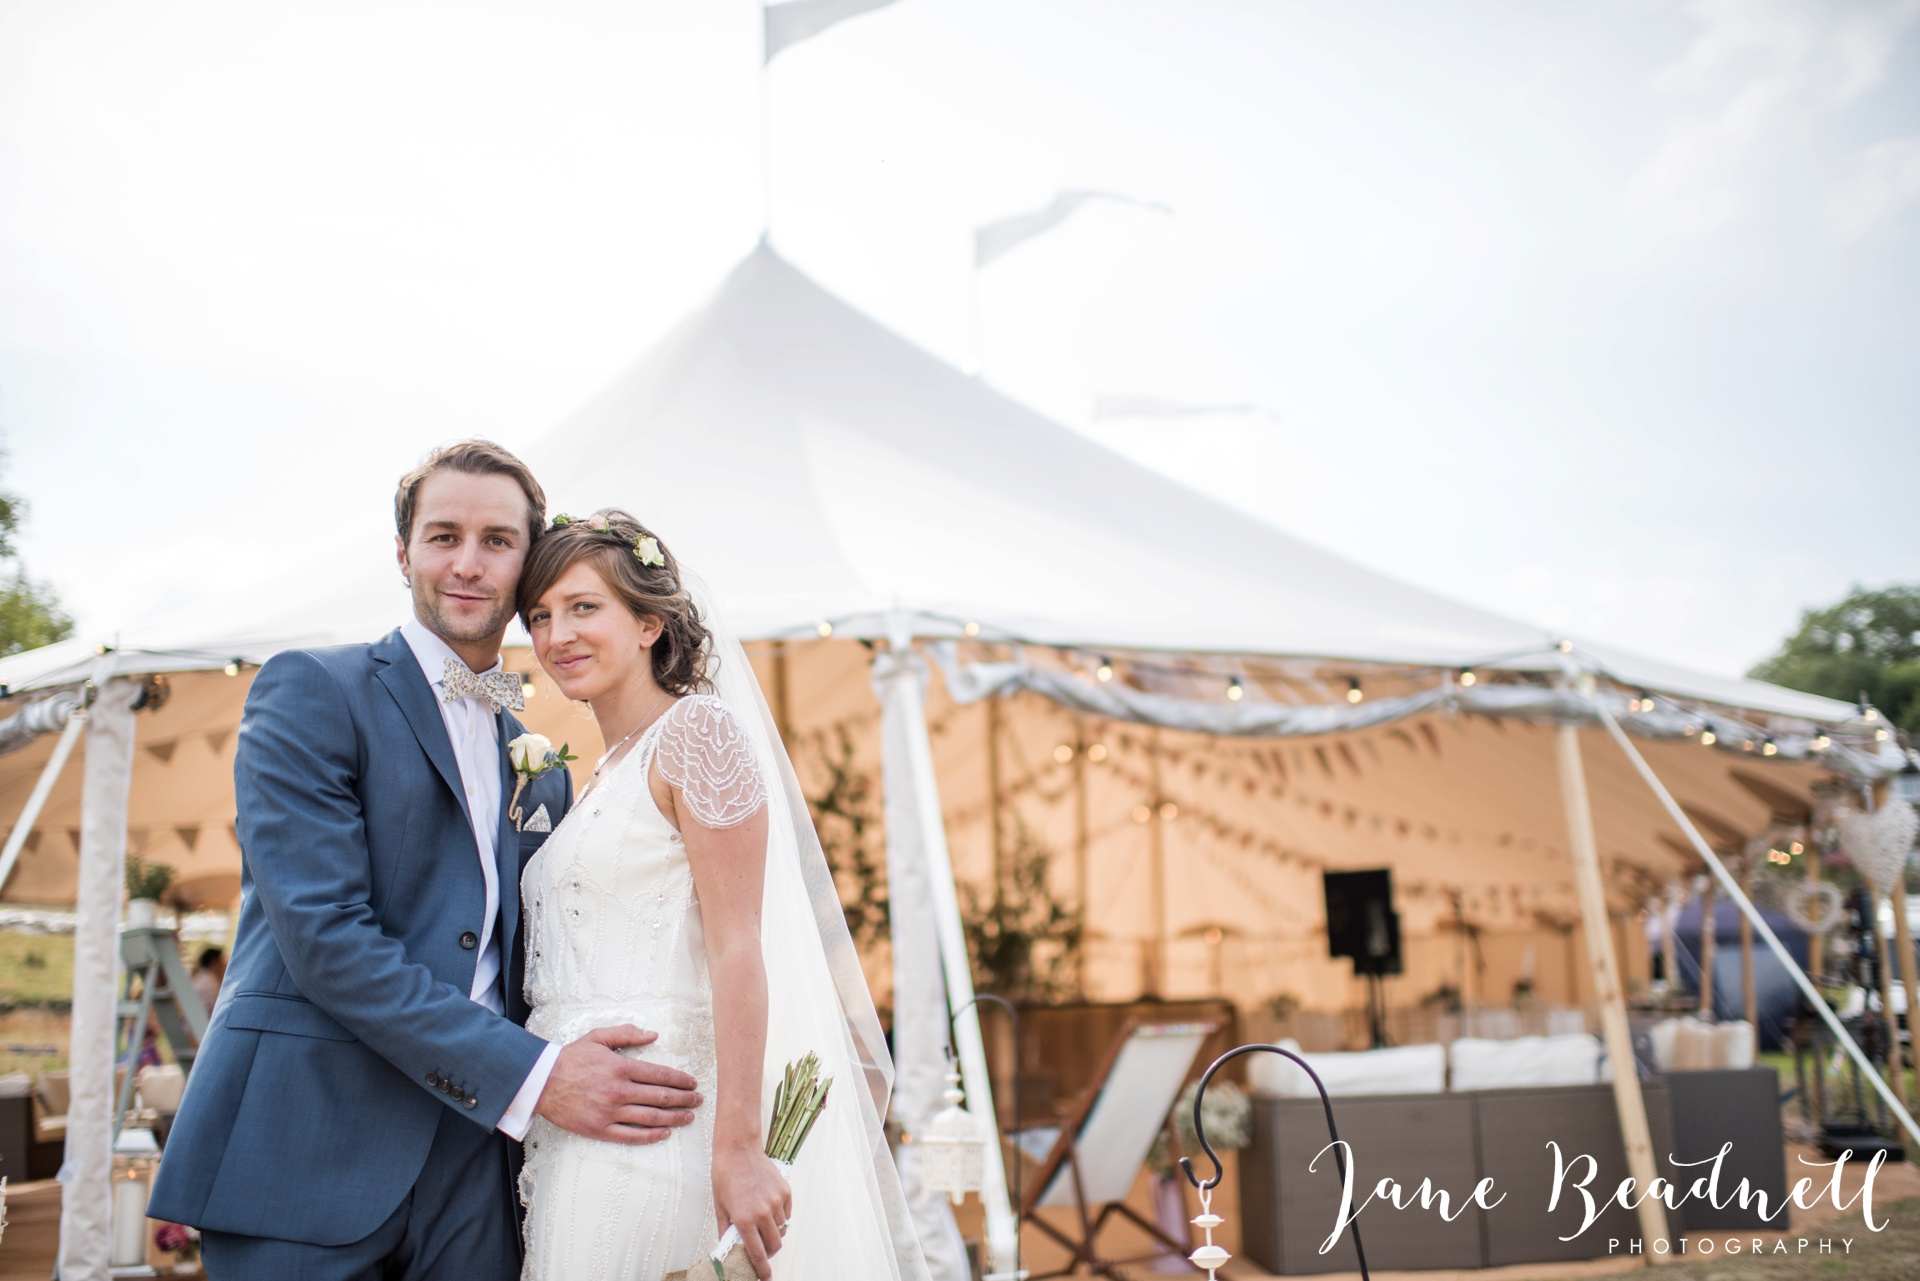 Jane Beadnell fine art wedding photographer Leeds_0061